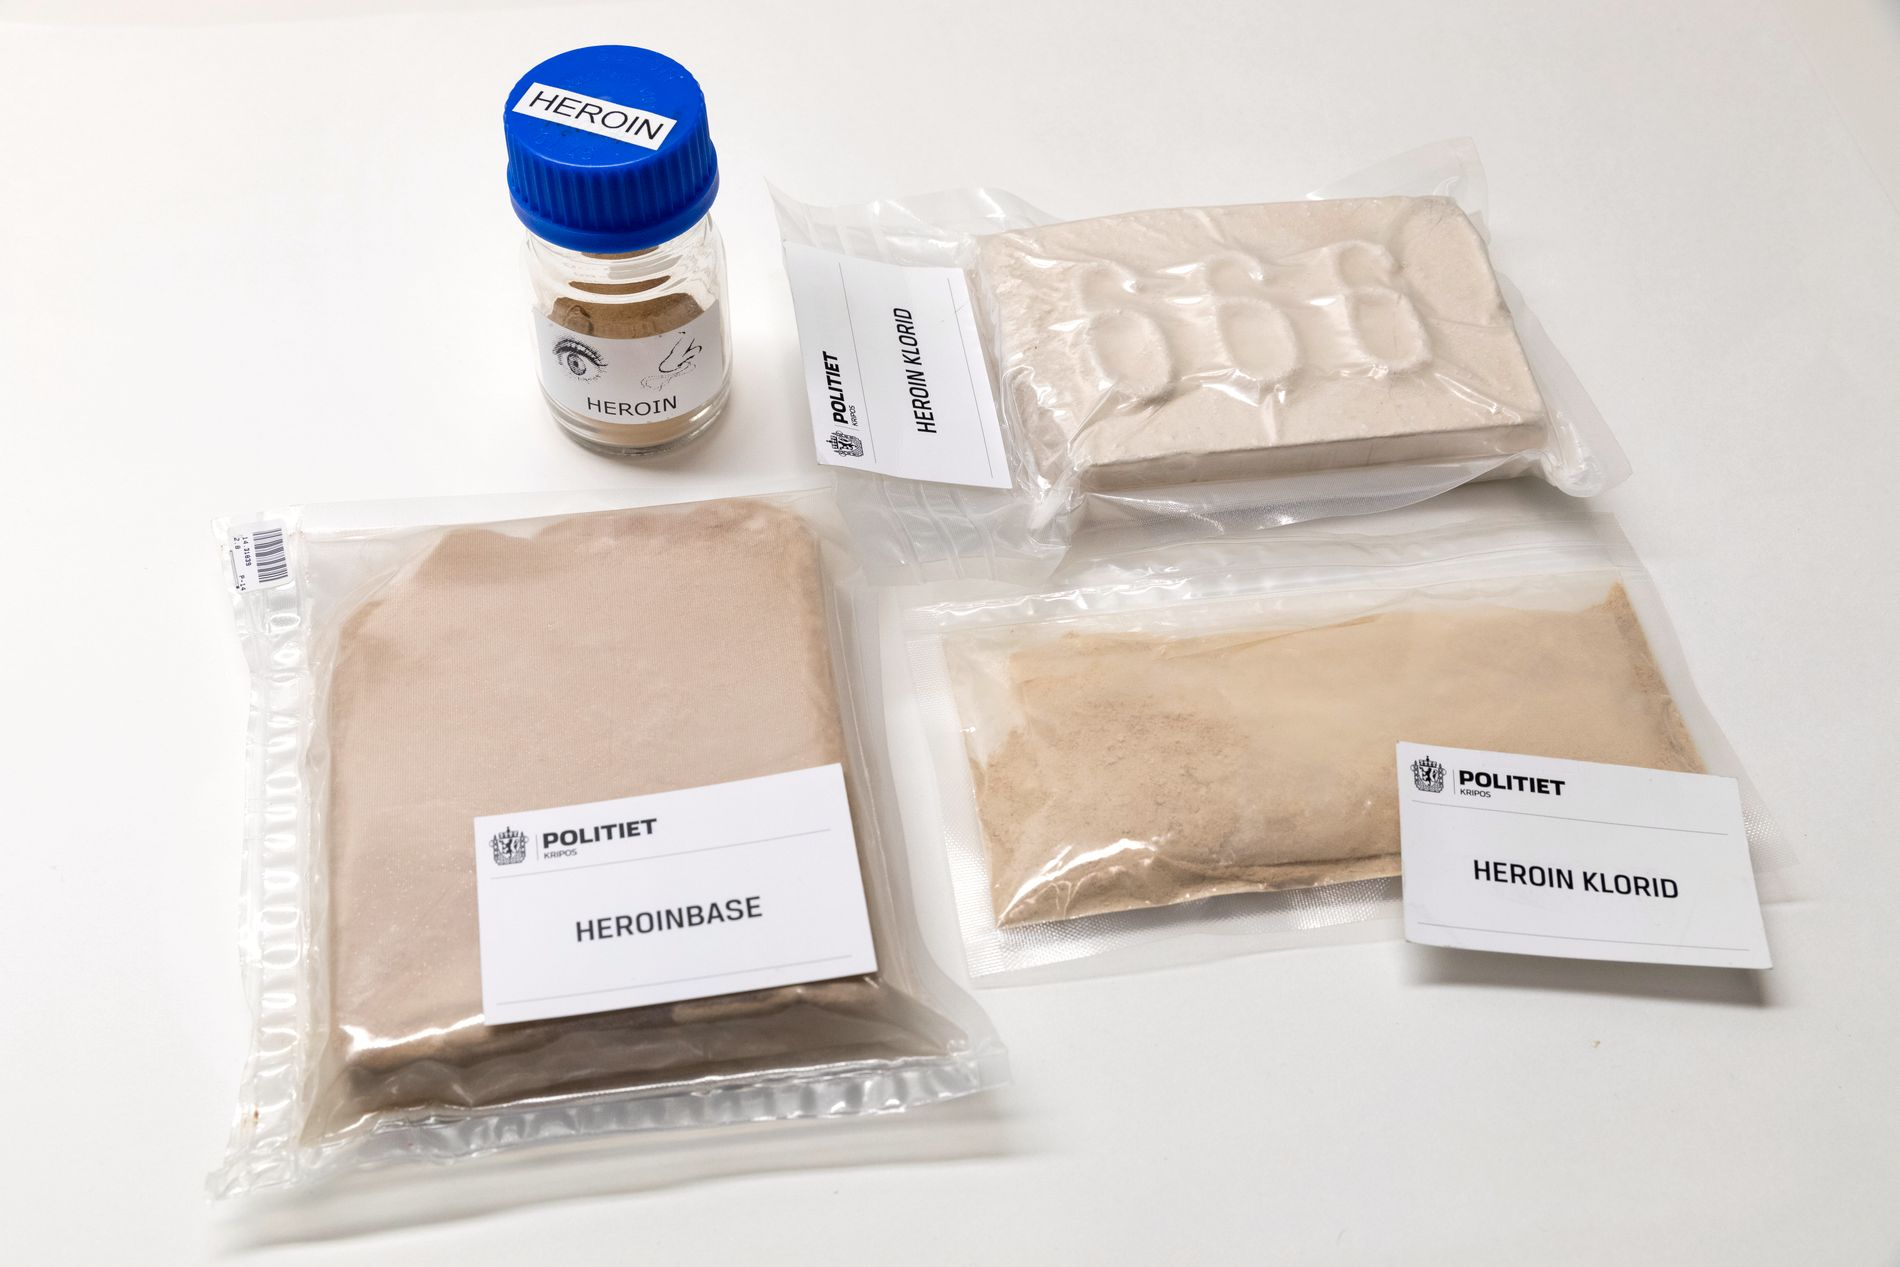 DRUGS: In a kitchen counter, police found drugs worth 3-5 million.